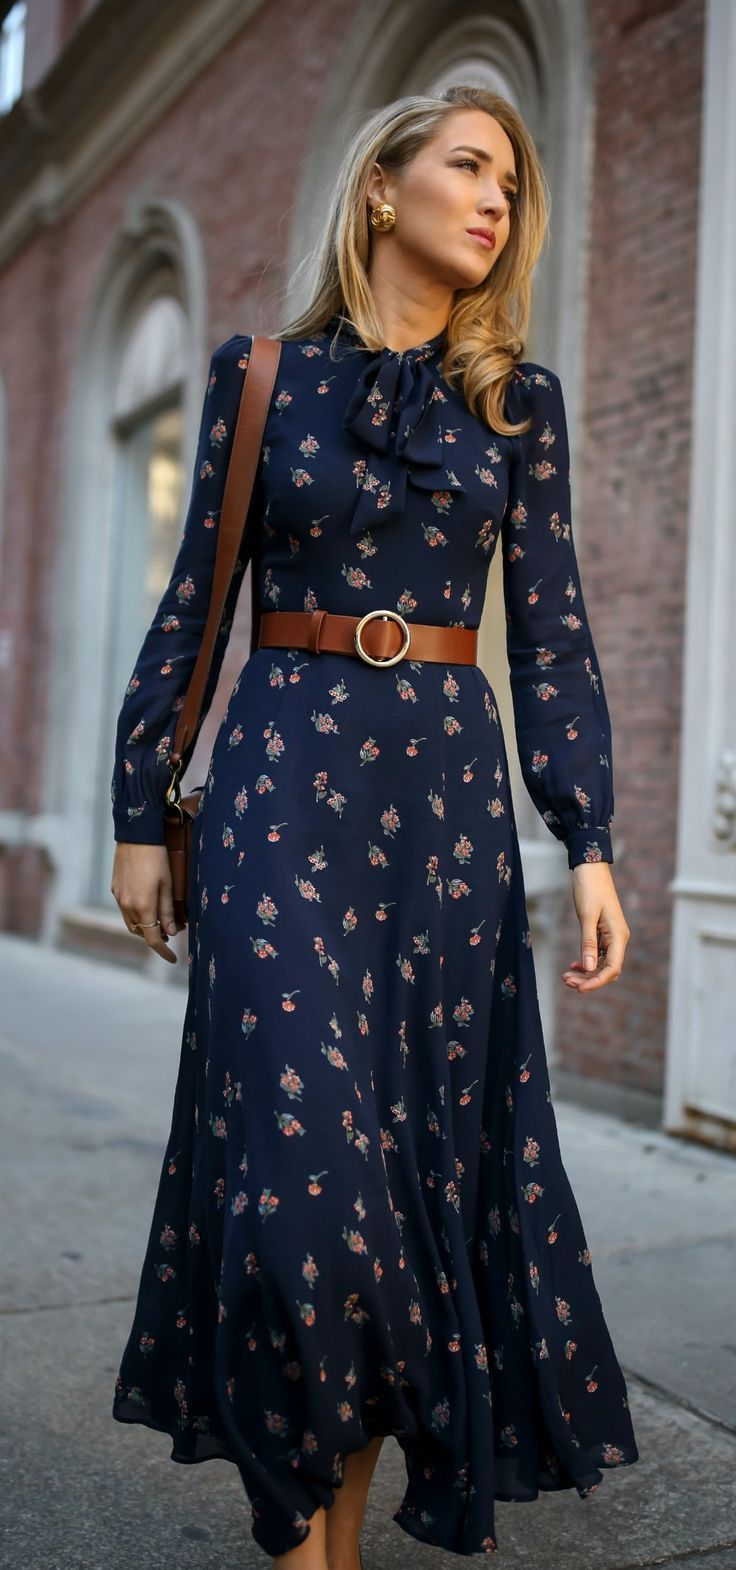 762e53c4cb84 Click for outfit details! Navy floral tie-neck maxi dress with navy suede  stiletto